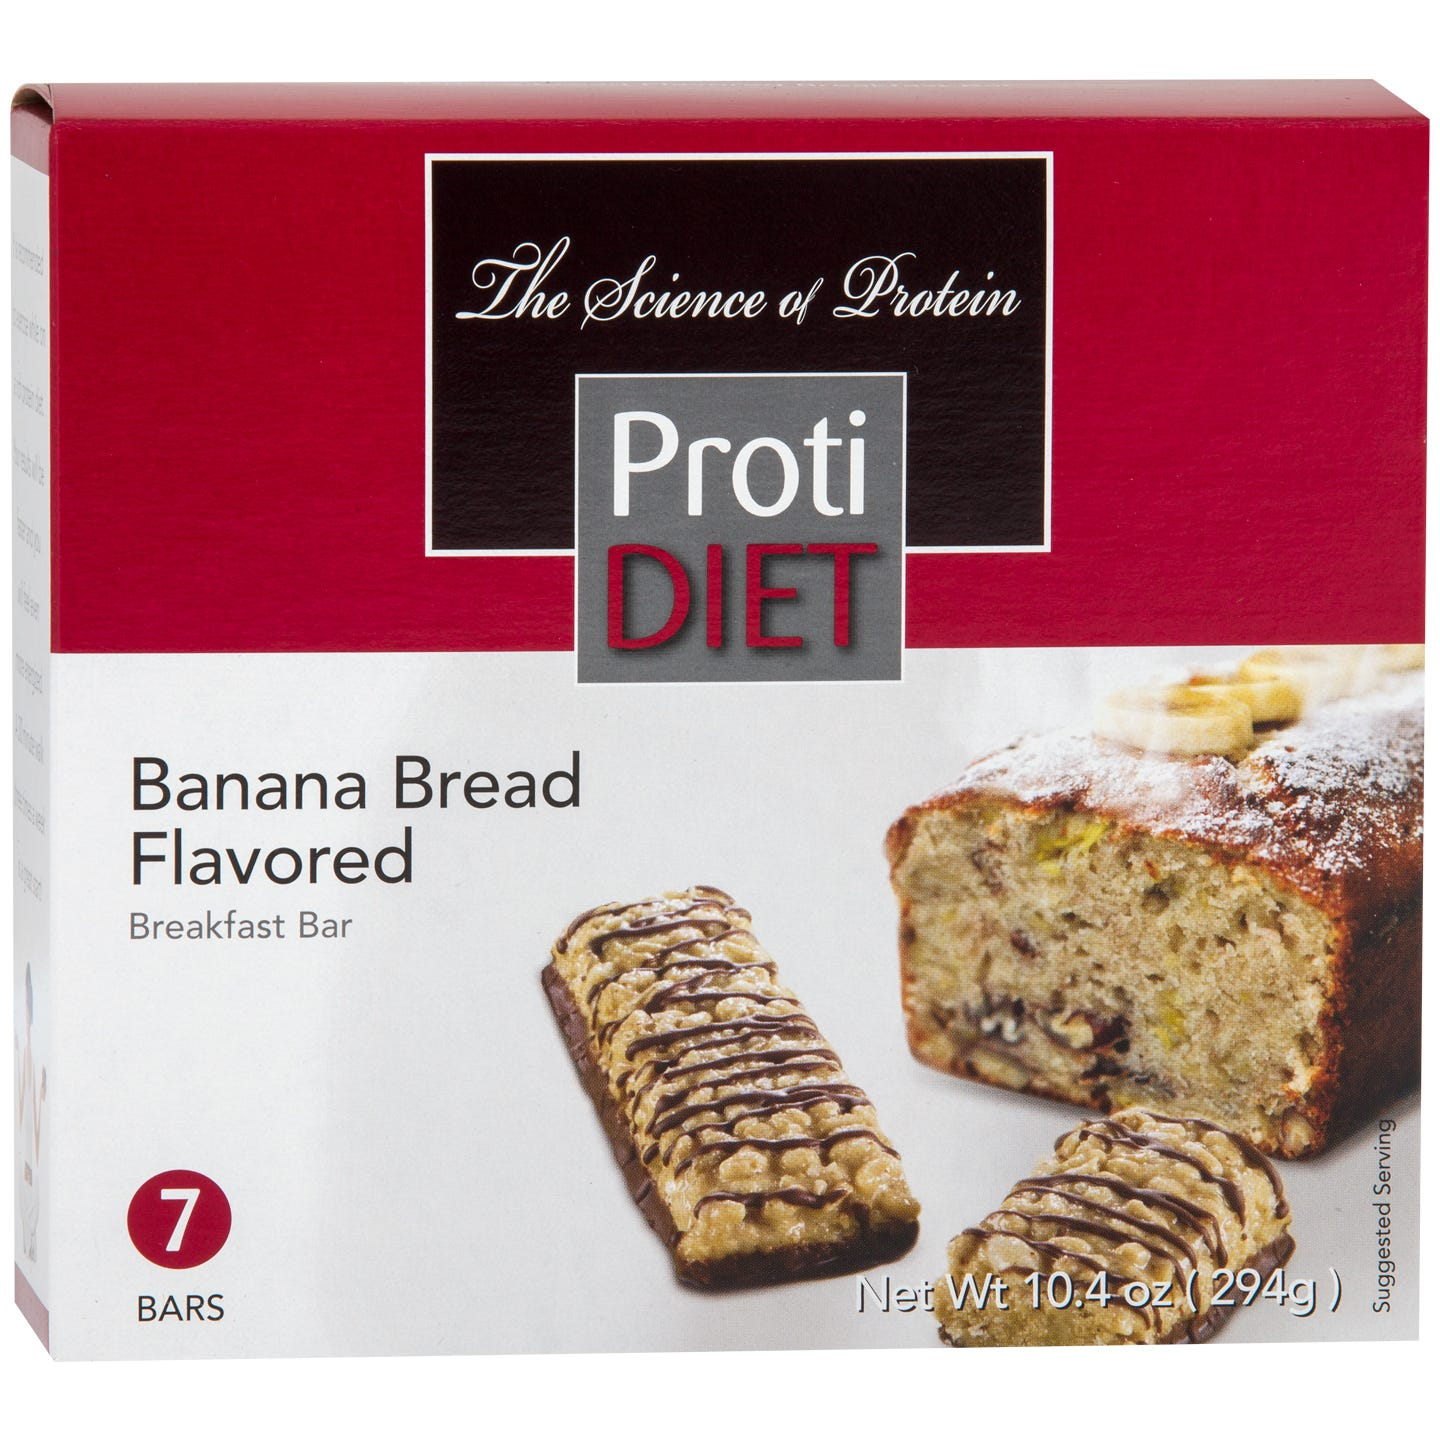 Breakfast Bar Banana Bread (7 Ct) - ProtiDiet